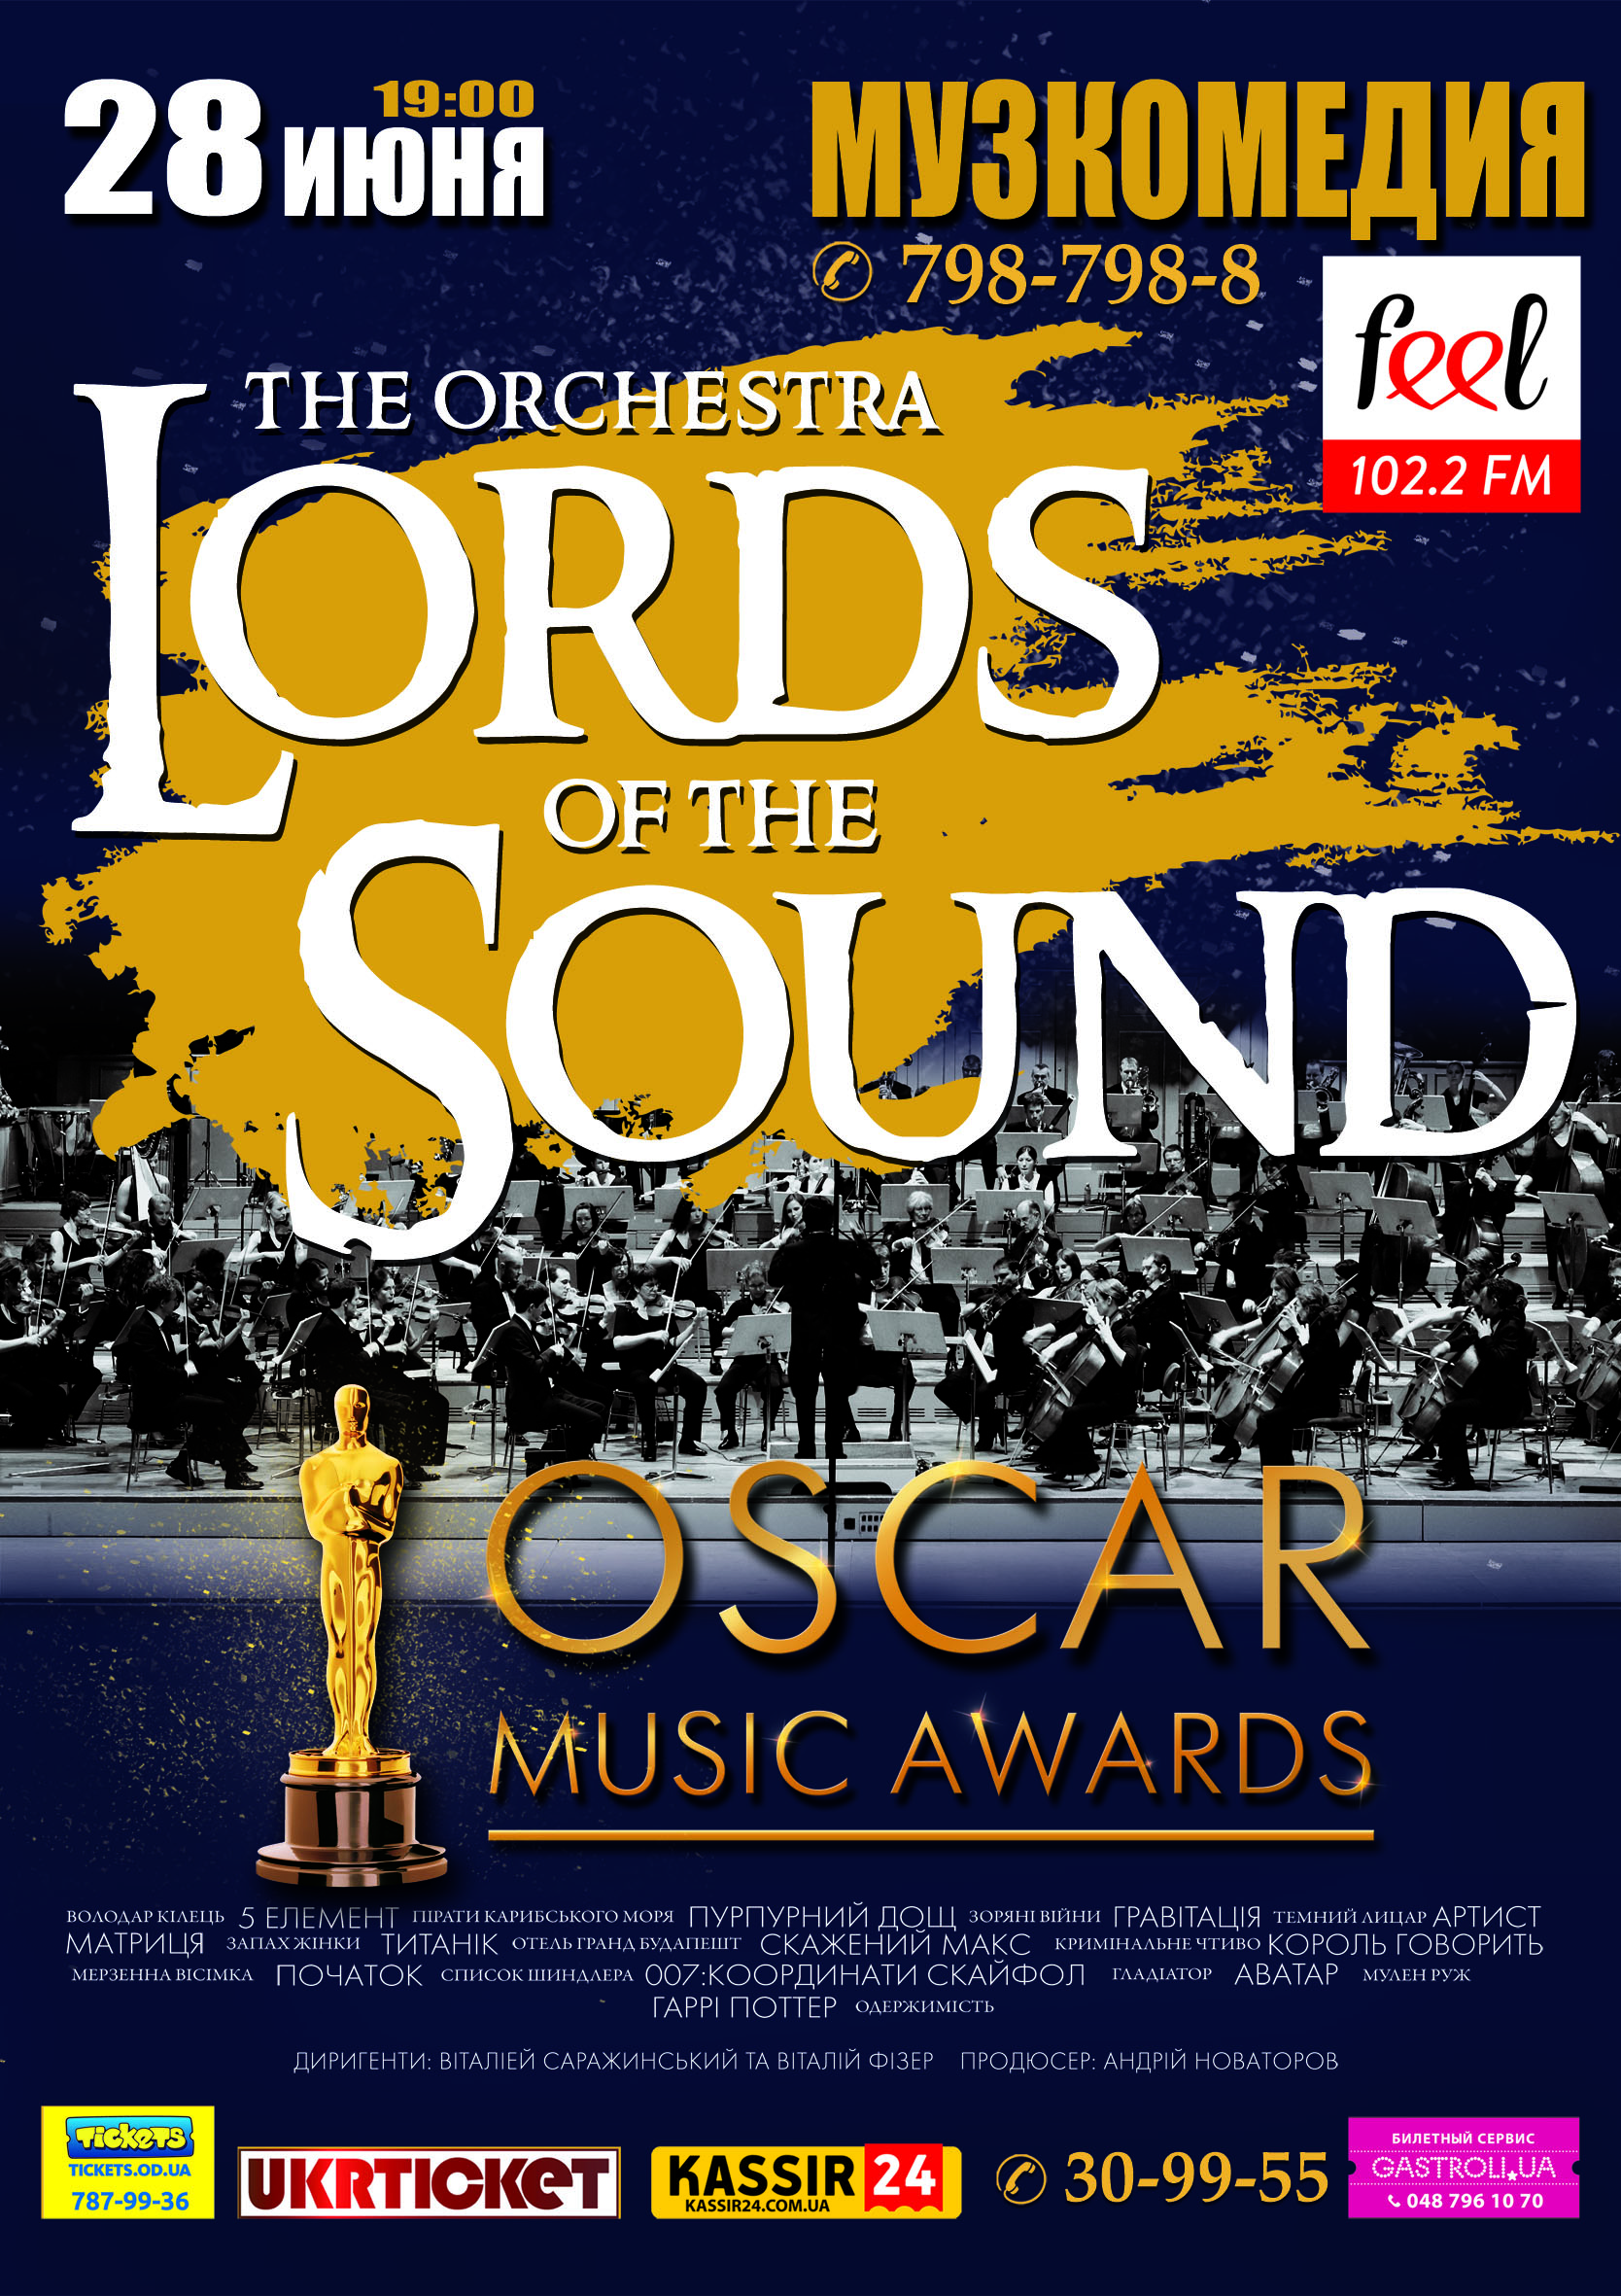 LORDS OF THE SOUND OSCAR MUSIC AWARDS